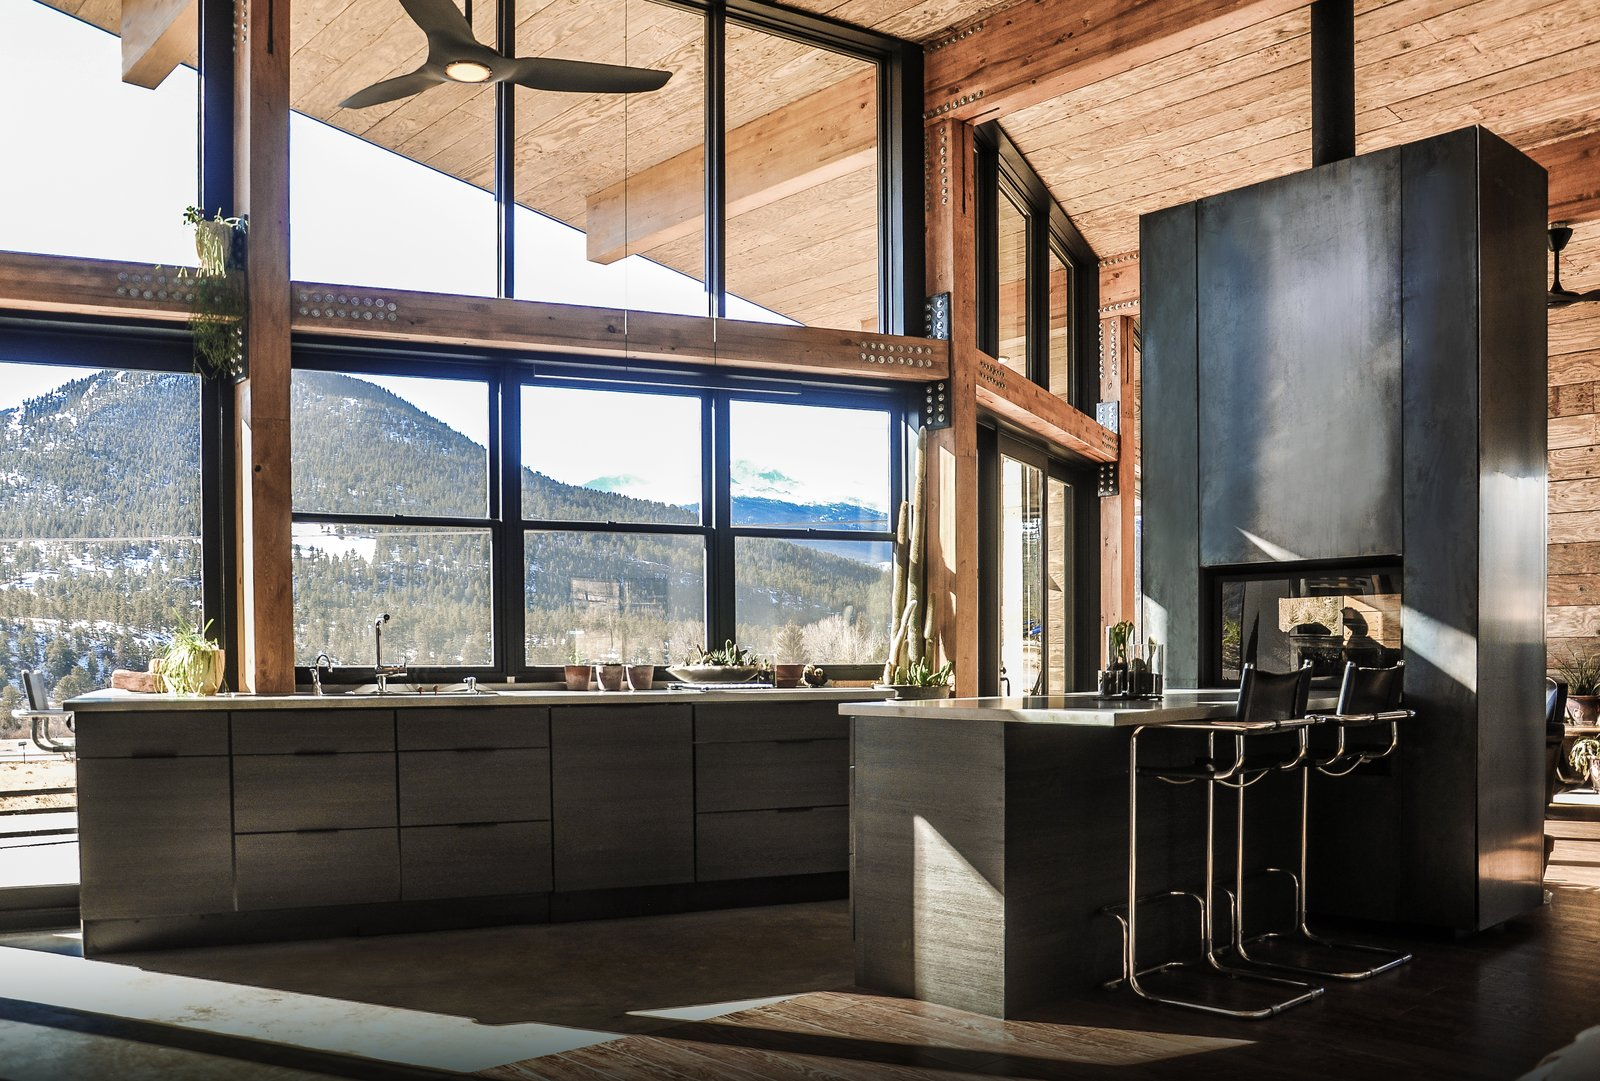 Kitchen, Refrigerator, Microwave, Cooktops, Wood, Dishwasher, Ceiling, Metal, Dark Hardwood, Concrete, Concrete, Range, Wall Oven, Pendant, Concrete, Accent, and Drop In The warm industrial kitchen celebrates views of Rocky Mountain National Park beyond. A see-through, steel fireplace becomes a glowing beacon that warms the kitchen and living room at the heart of the home.   Best Kitchen Concrete Cooktops Ceiling Range Photos from Estes Park Residence